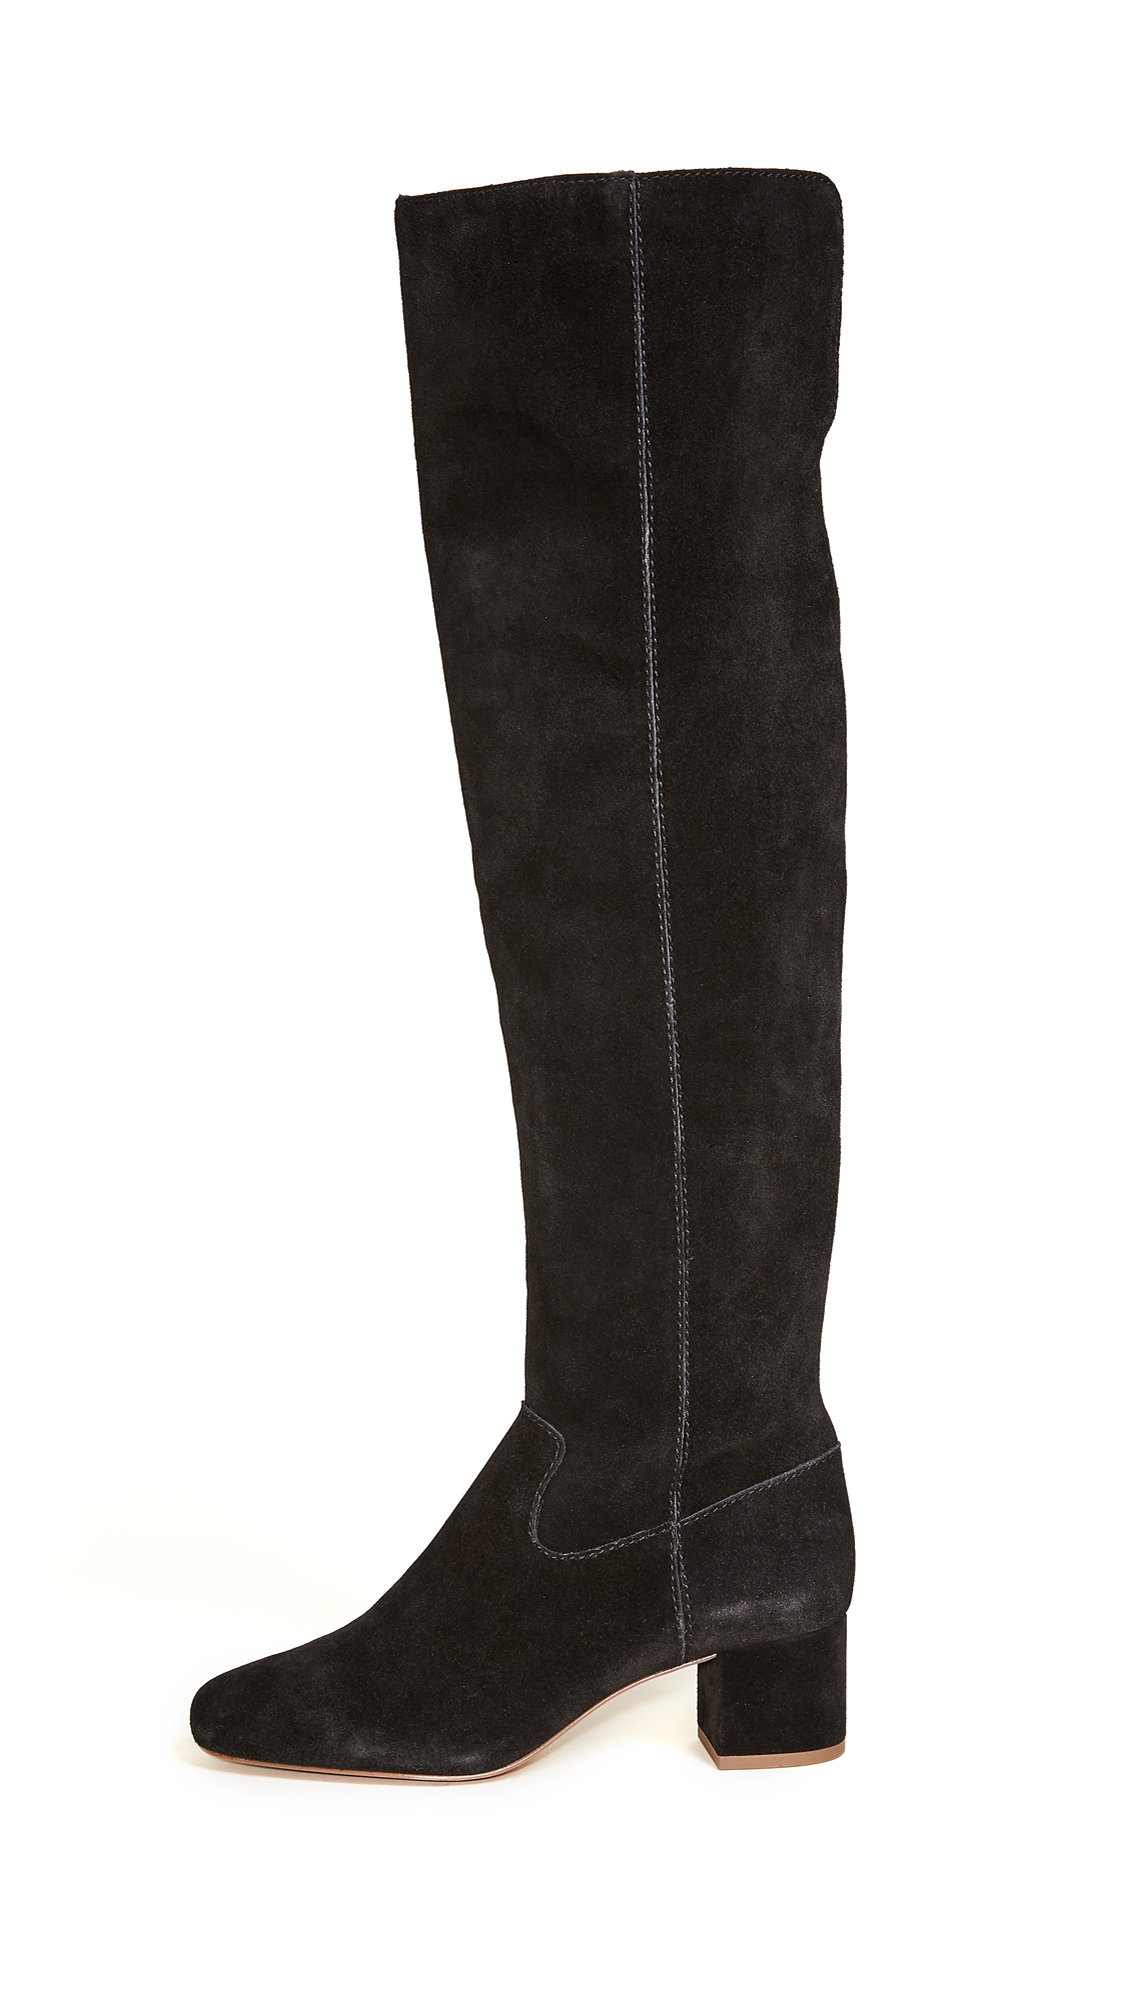 Madewell Walker Boots - True Black